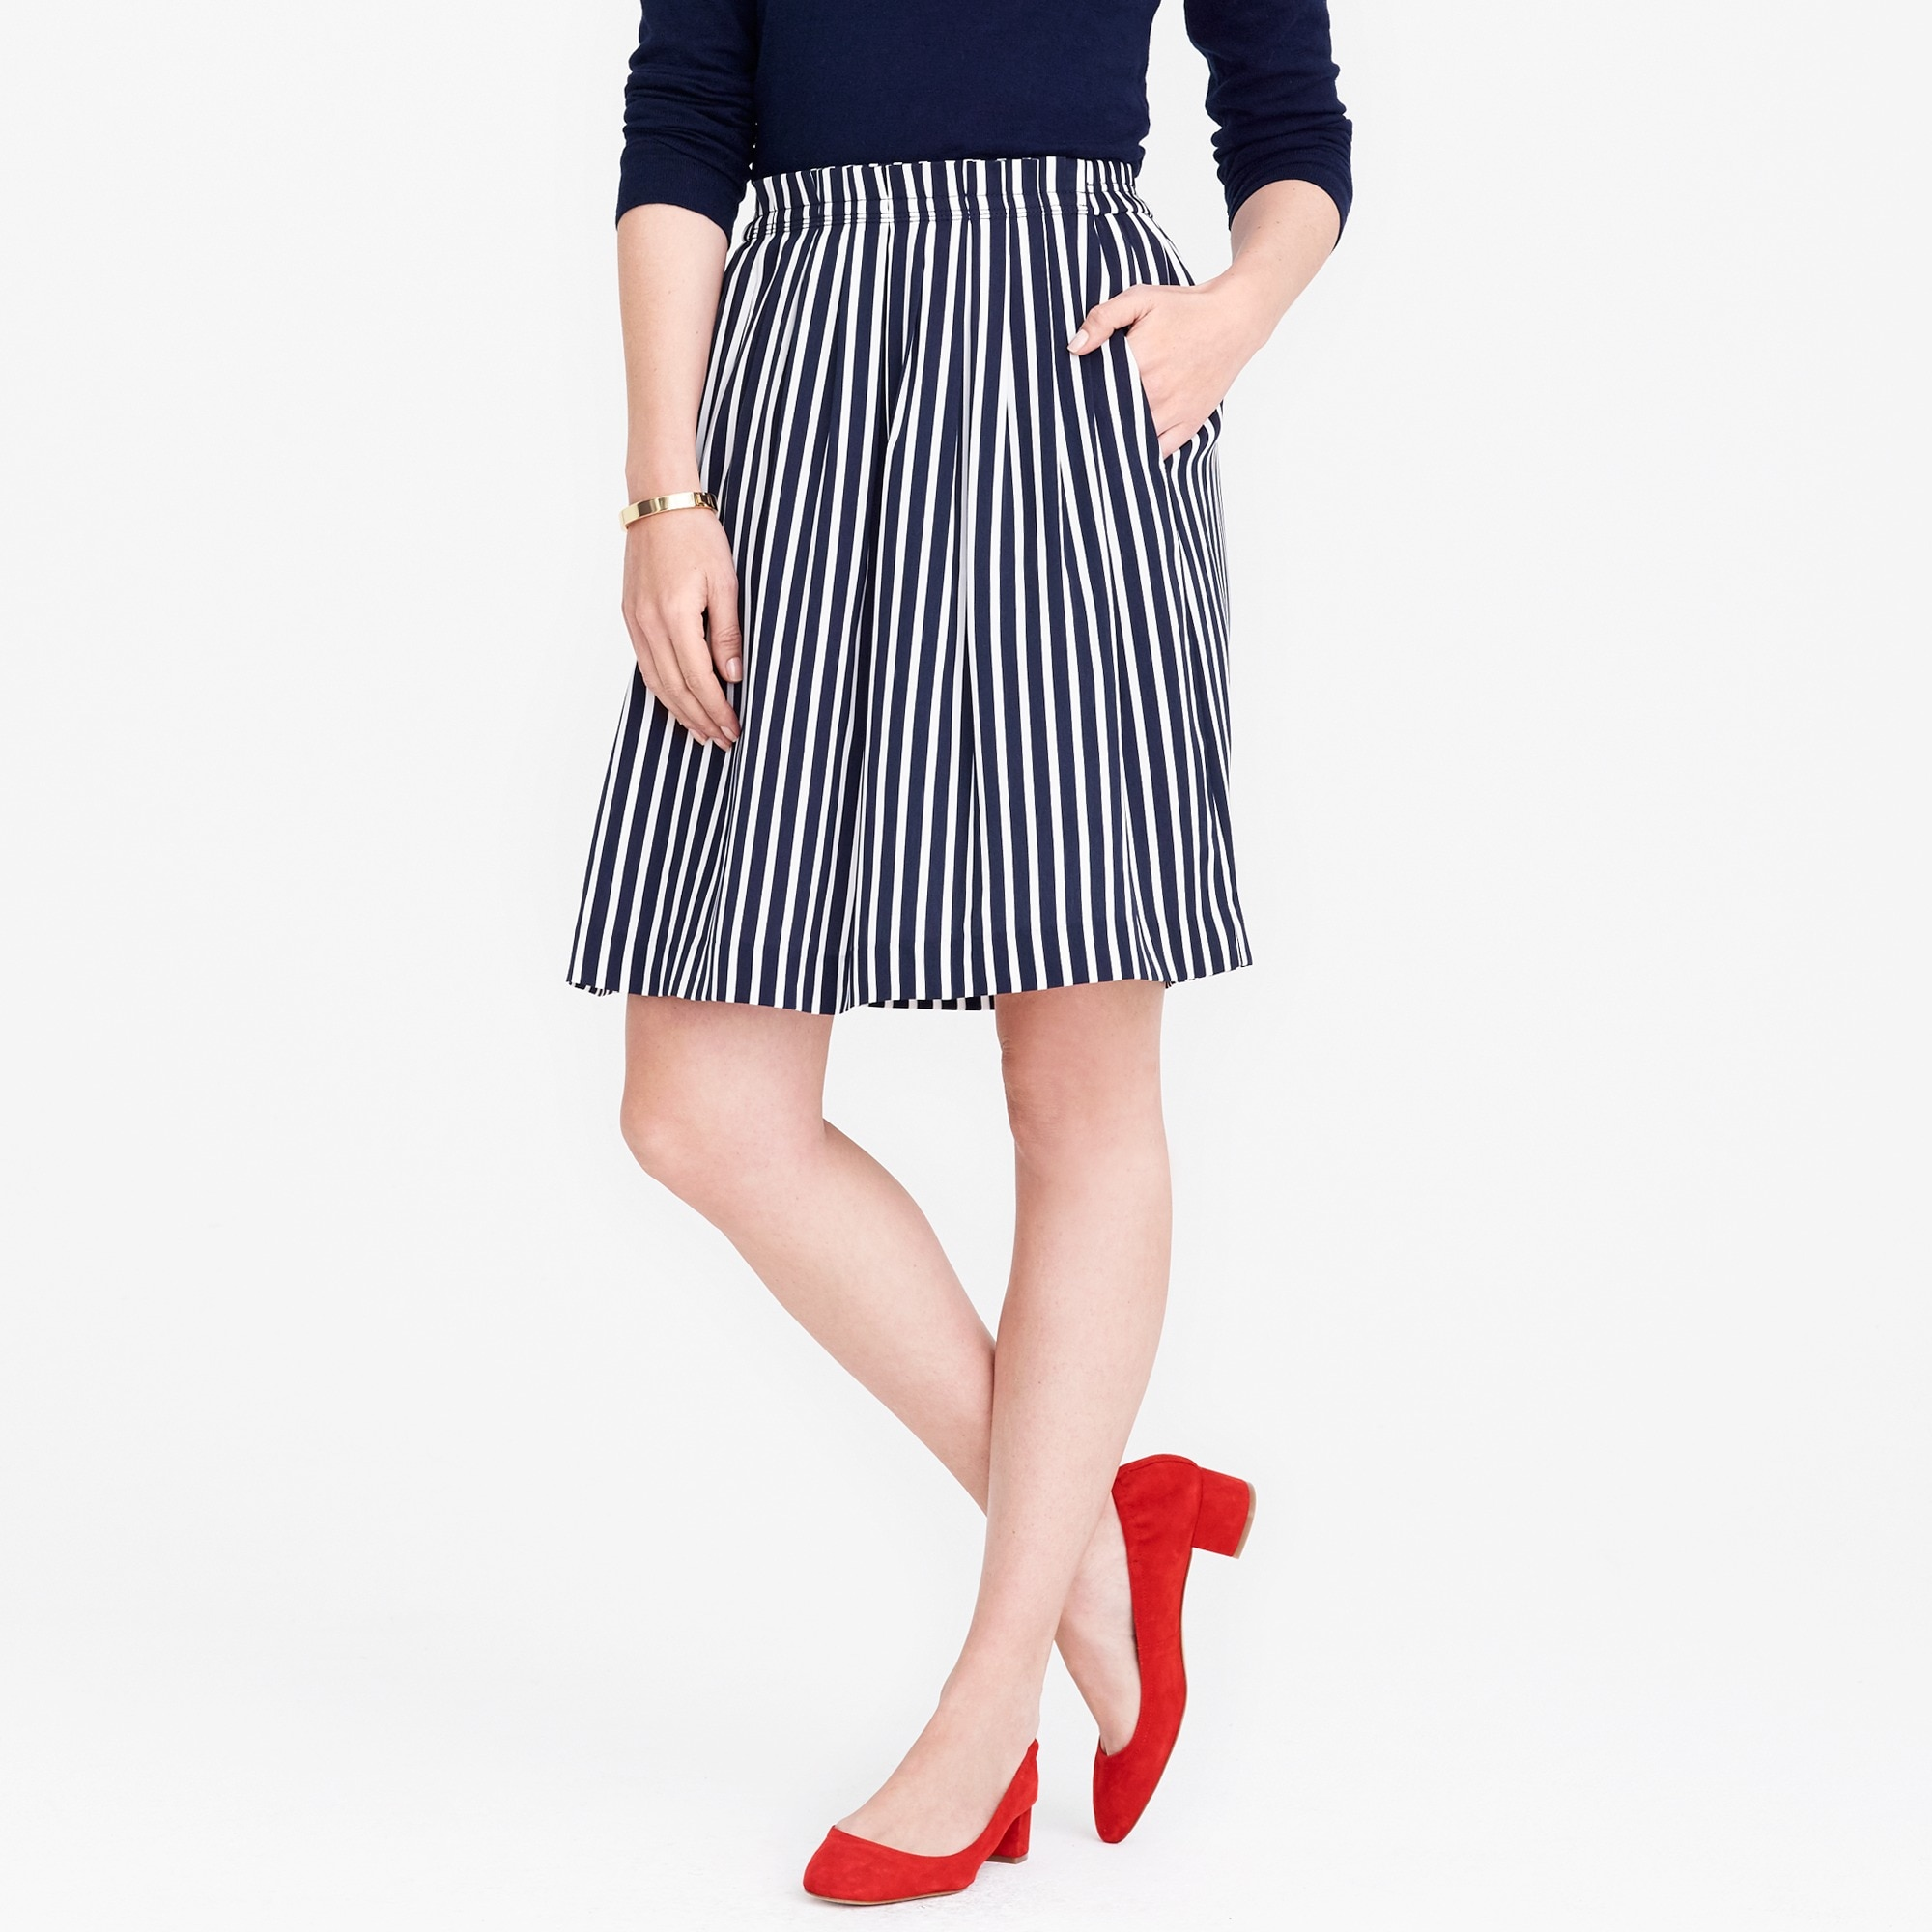 Striped skirt factorywomen sizes 18-20 c